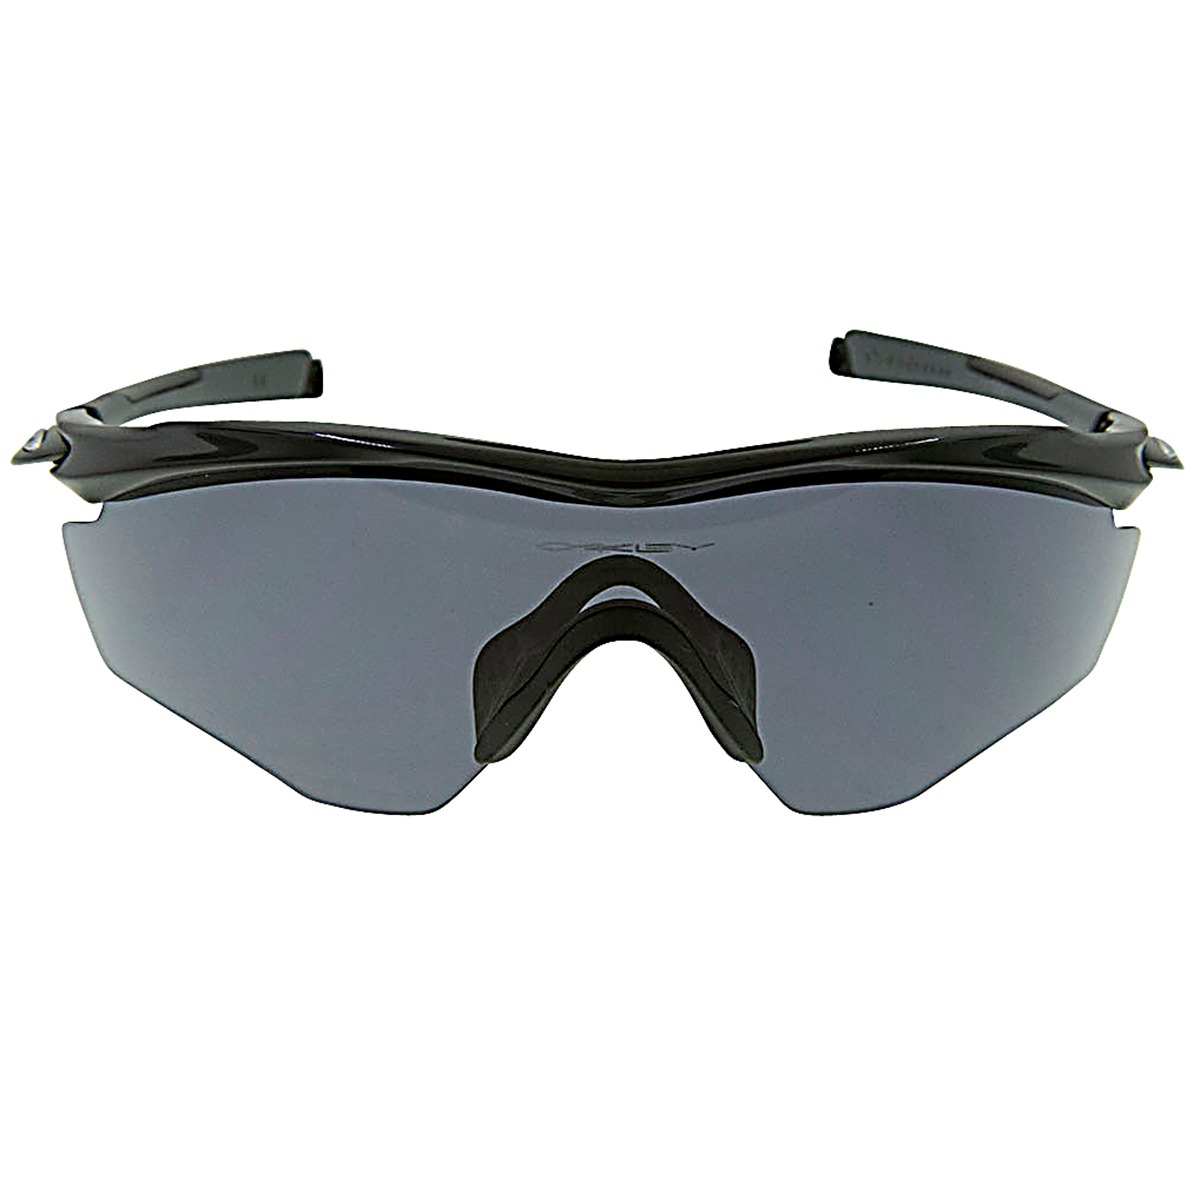 a318774d006 Details about New Authentic Oakley M2 Frame XL Sunglasses Polished Black  with Grey Lenses